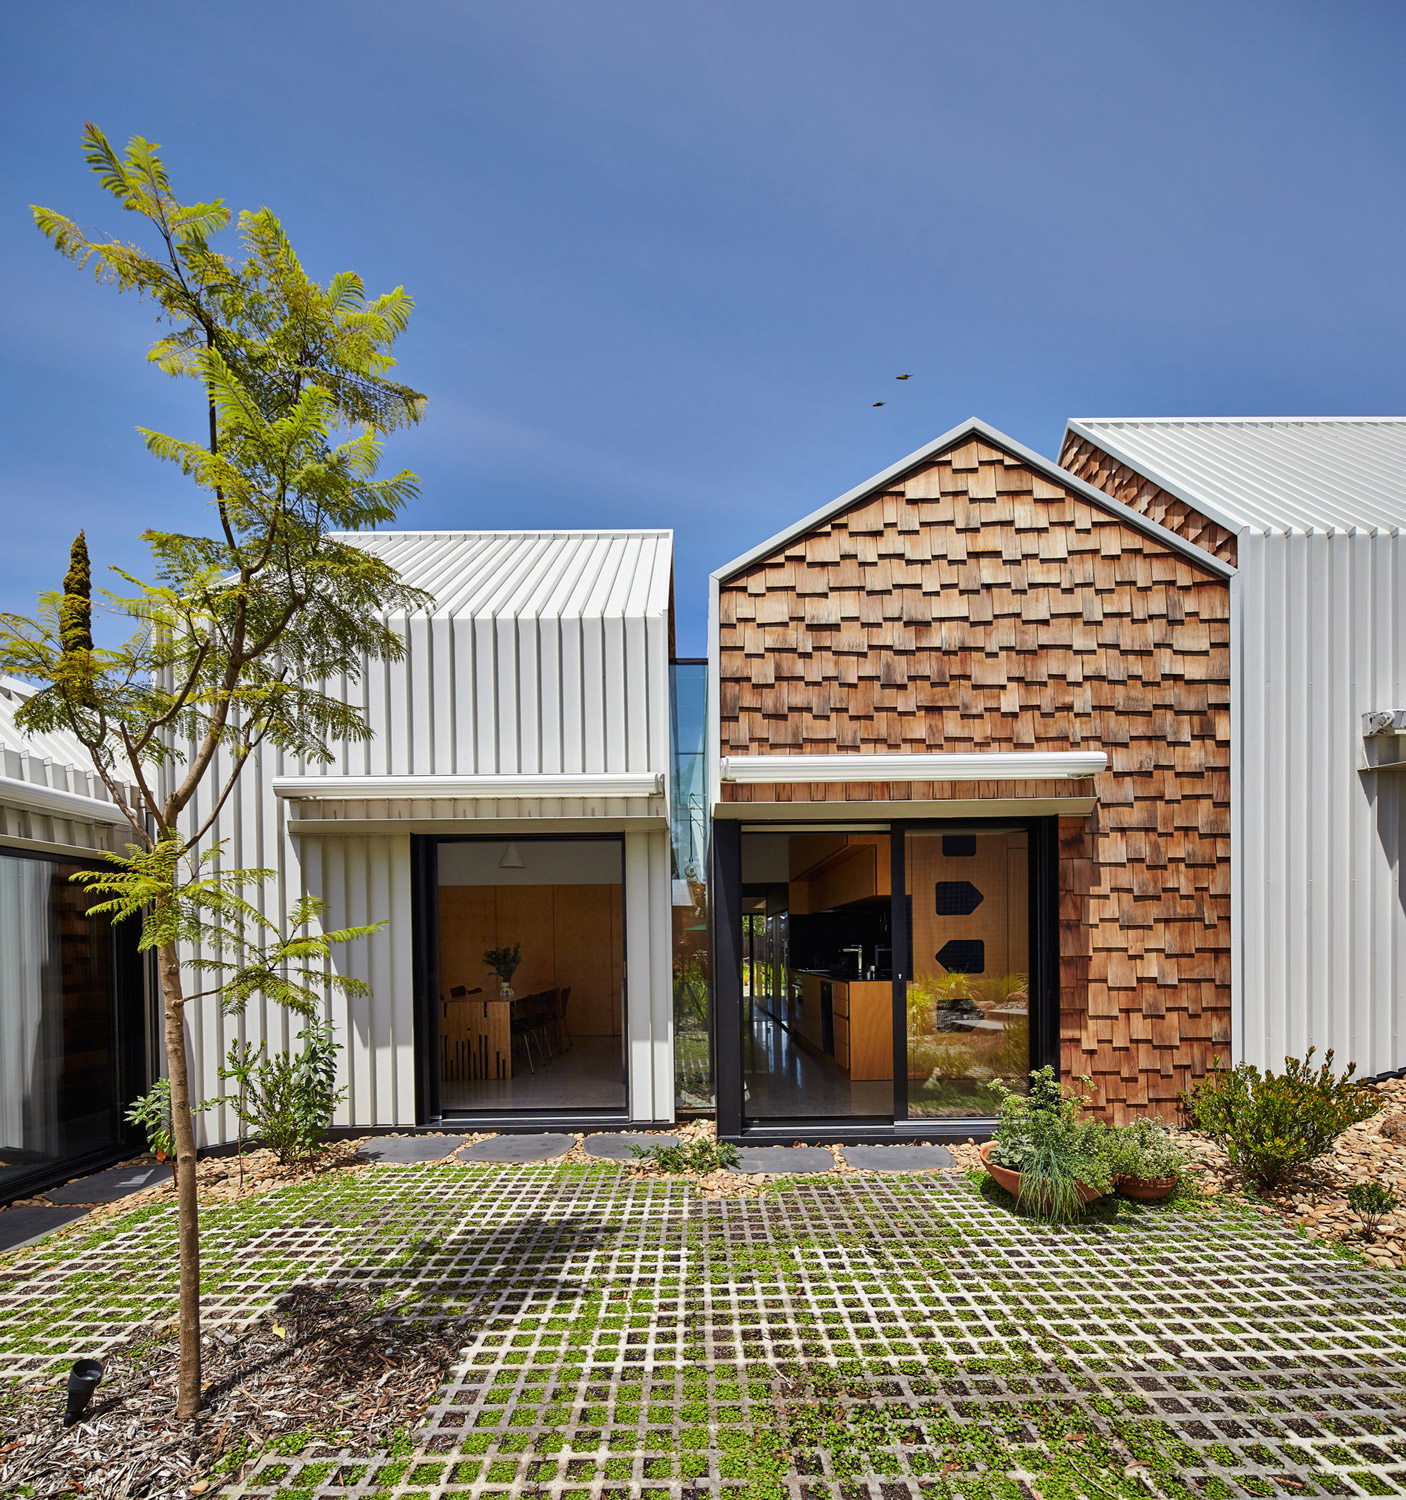 Tower House / Andrew Maynard Architects (24)